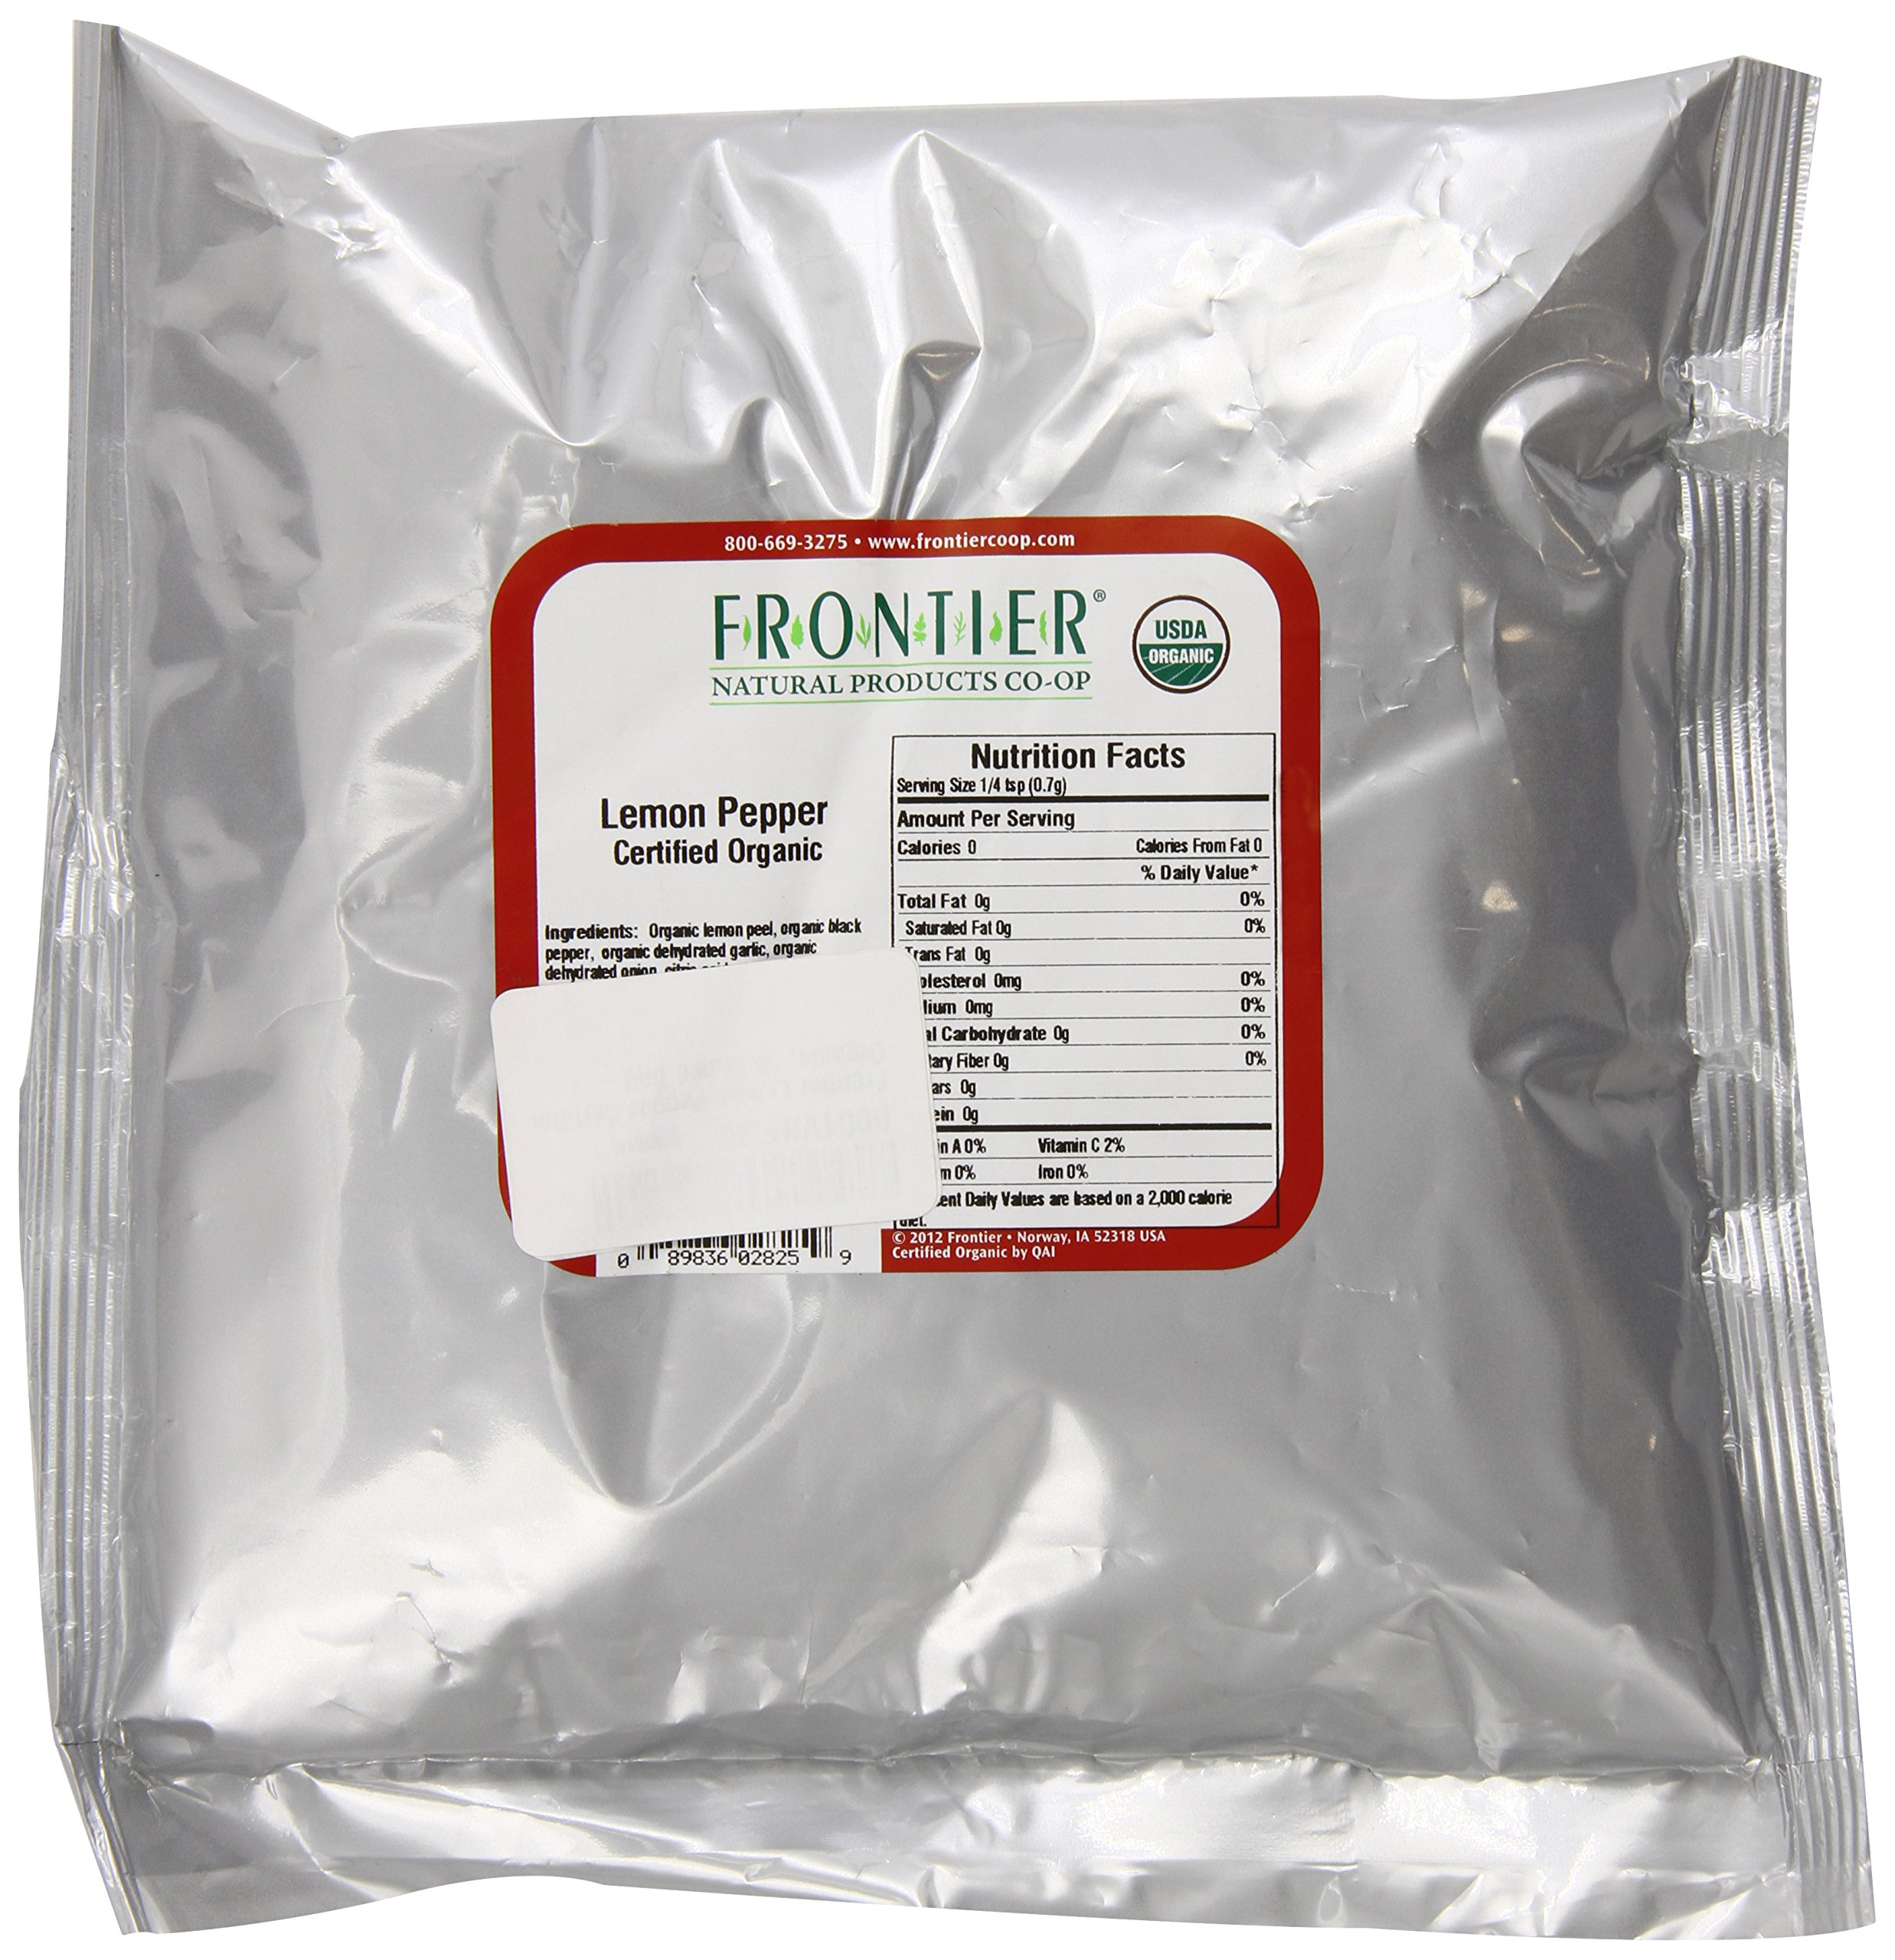 Frontier Lemon Pepper Certified Organic, 16 Ounce Bag by Frontier (Image #1)